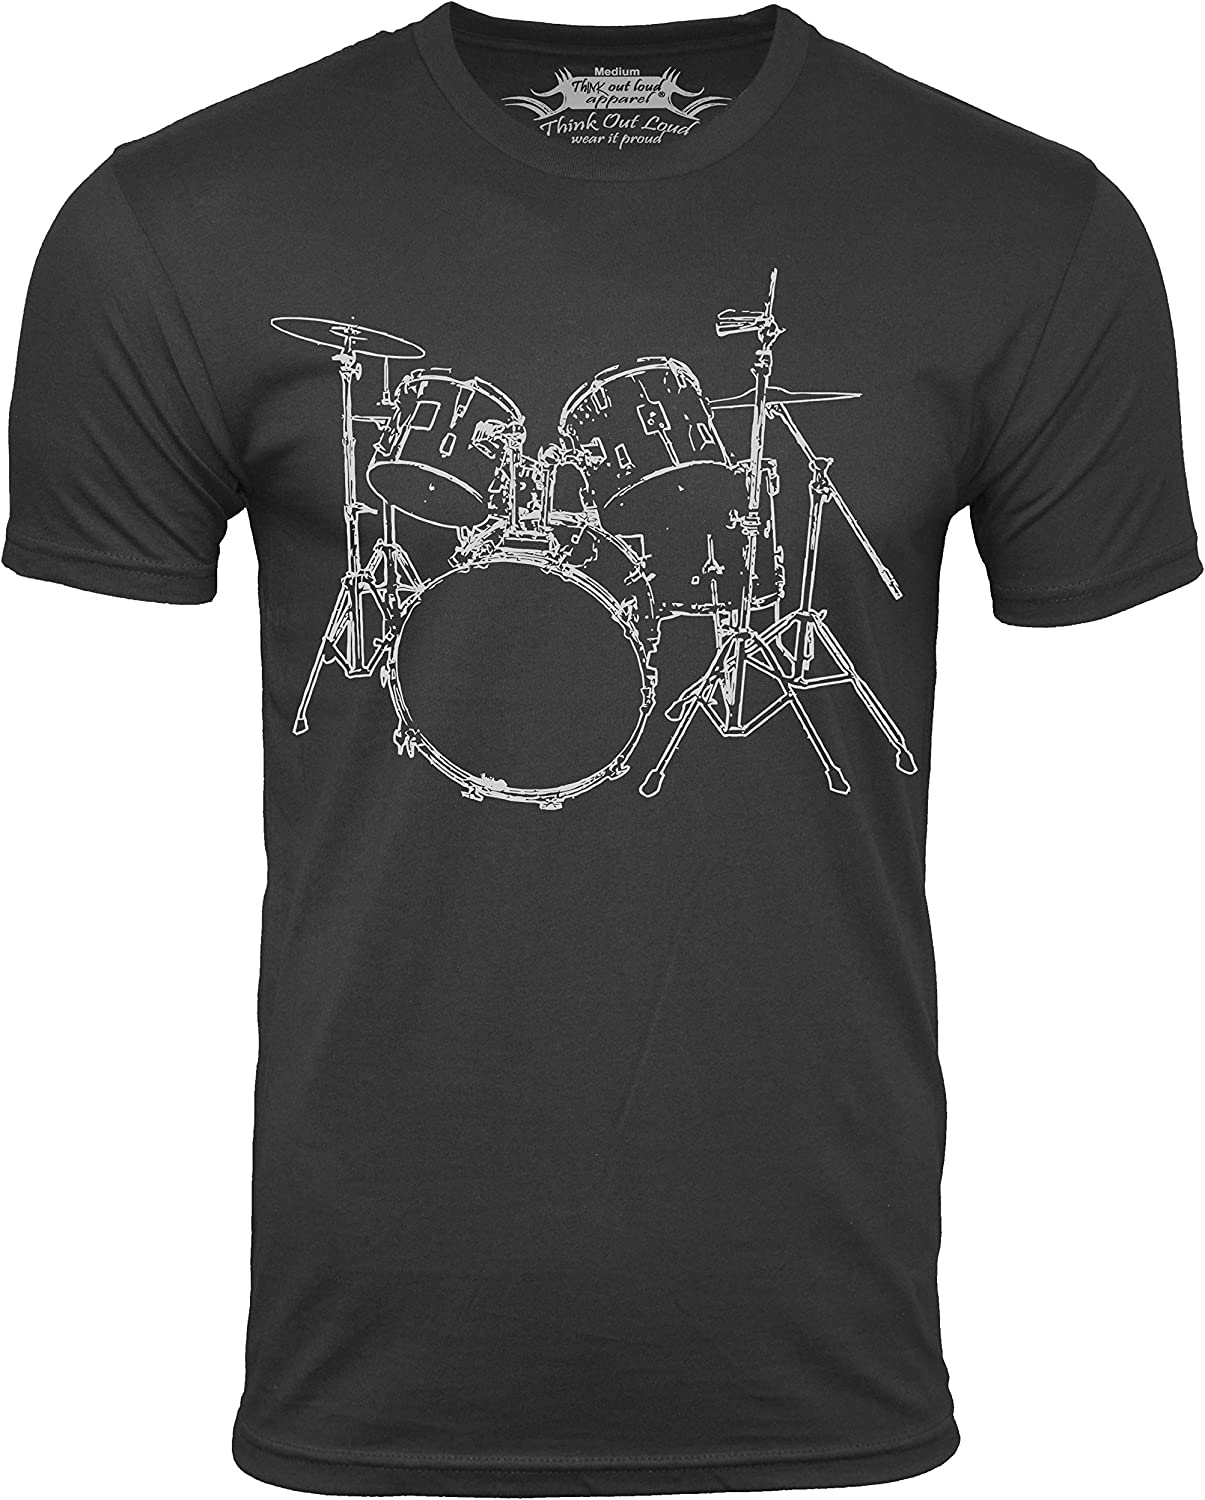 Think Out Loud Apparel Drums T-Shirt Artistic Design Drummer Tee